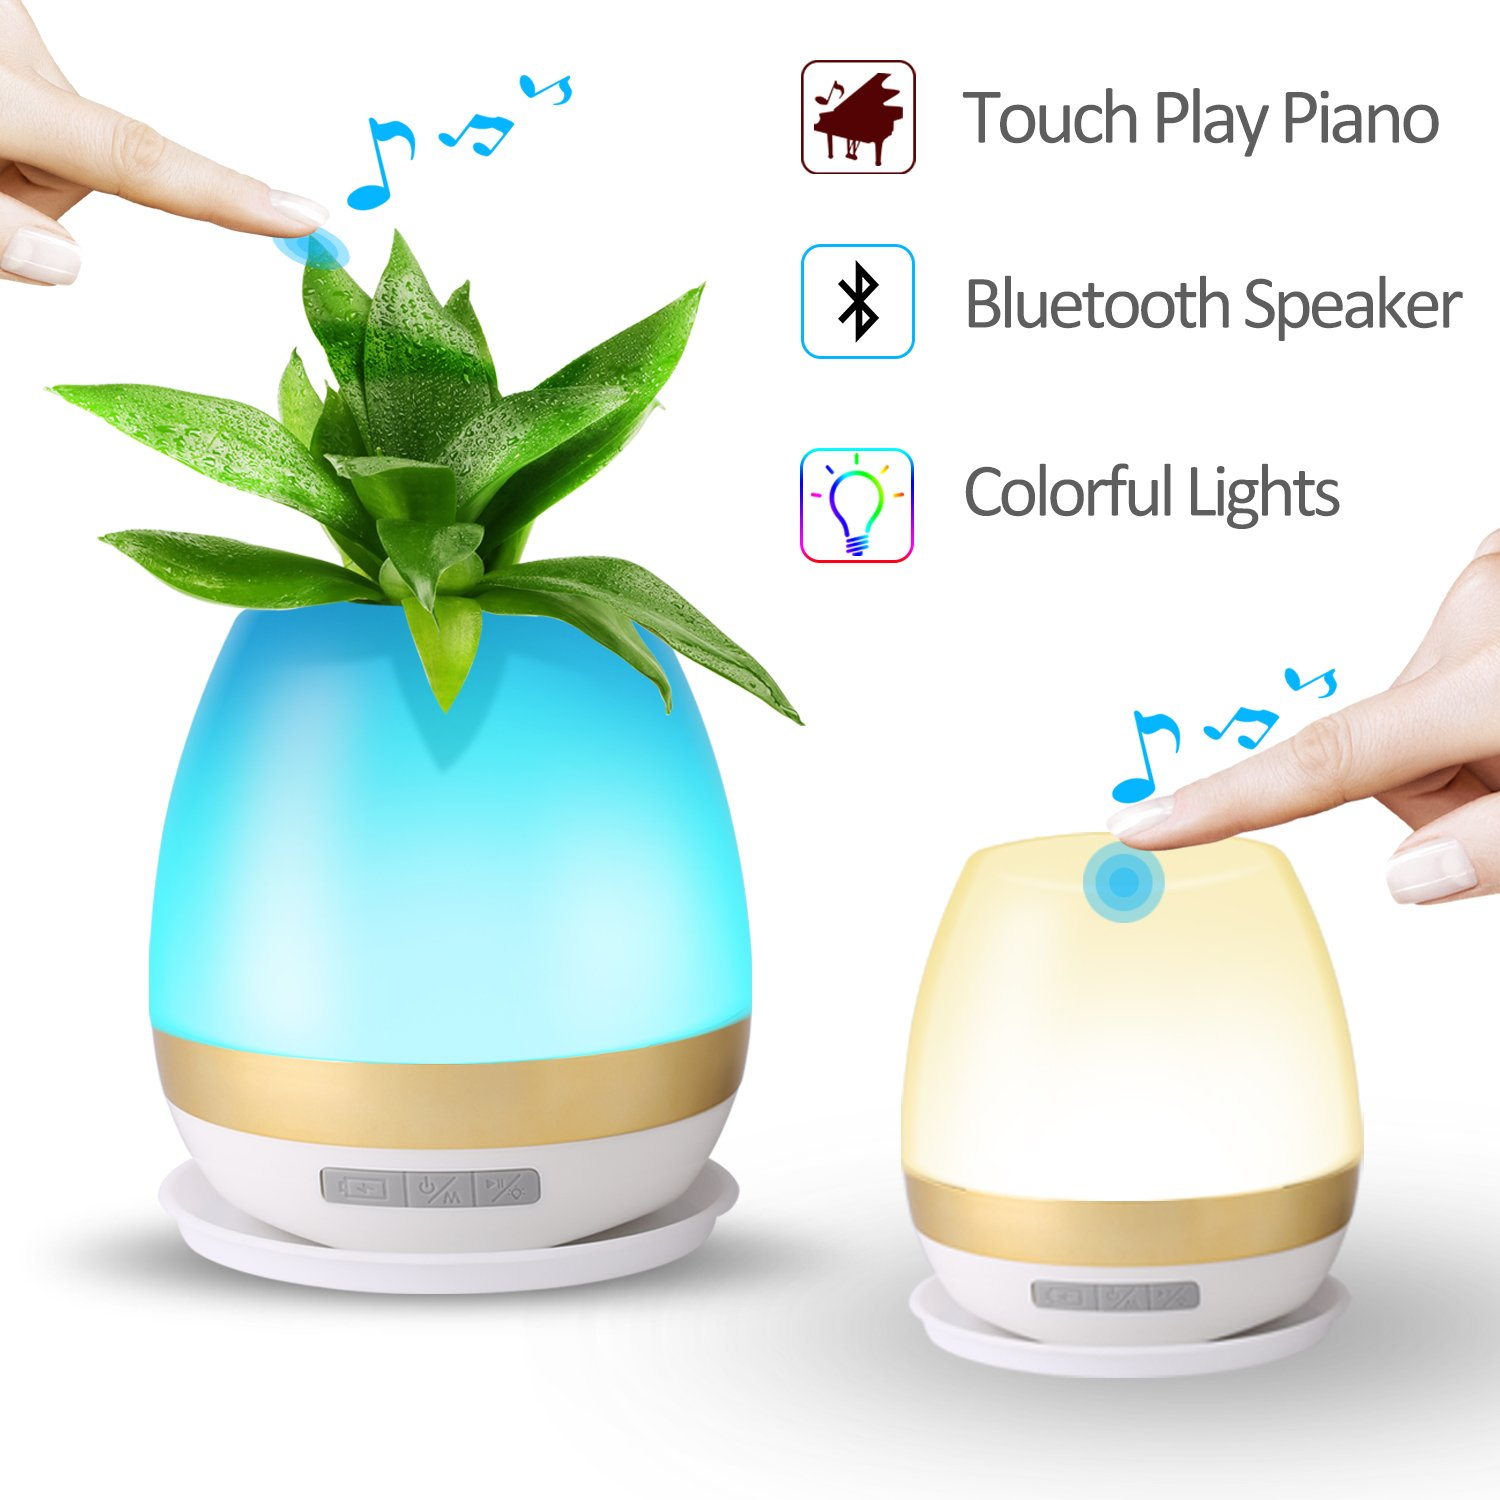 Night Light Table Lamp Wateproof Bluetooth Speaker Portable Wireless/Magic Desk Plant Pot Touch Play Piano Music/Touch LED Color Changing USB Rechargeable for Kids Bedside Bedroom Shower Women Gift